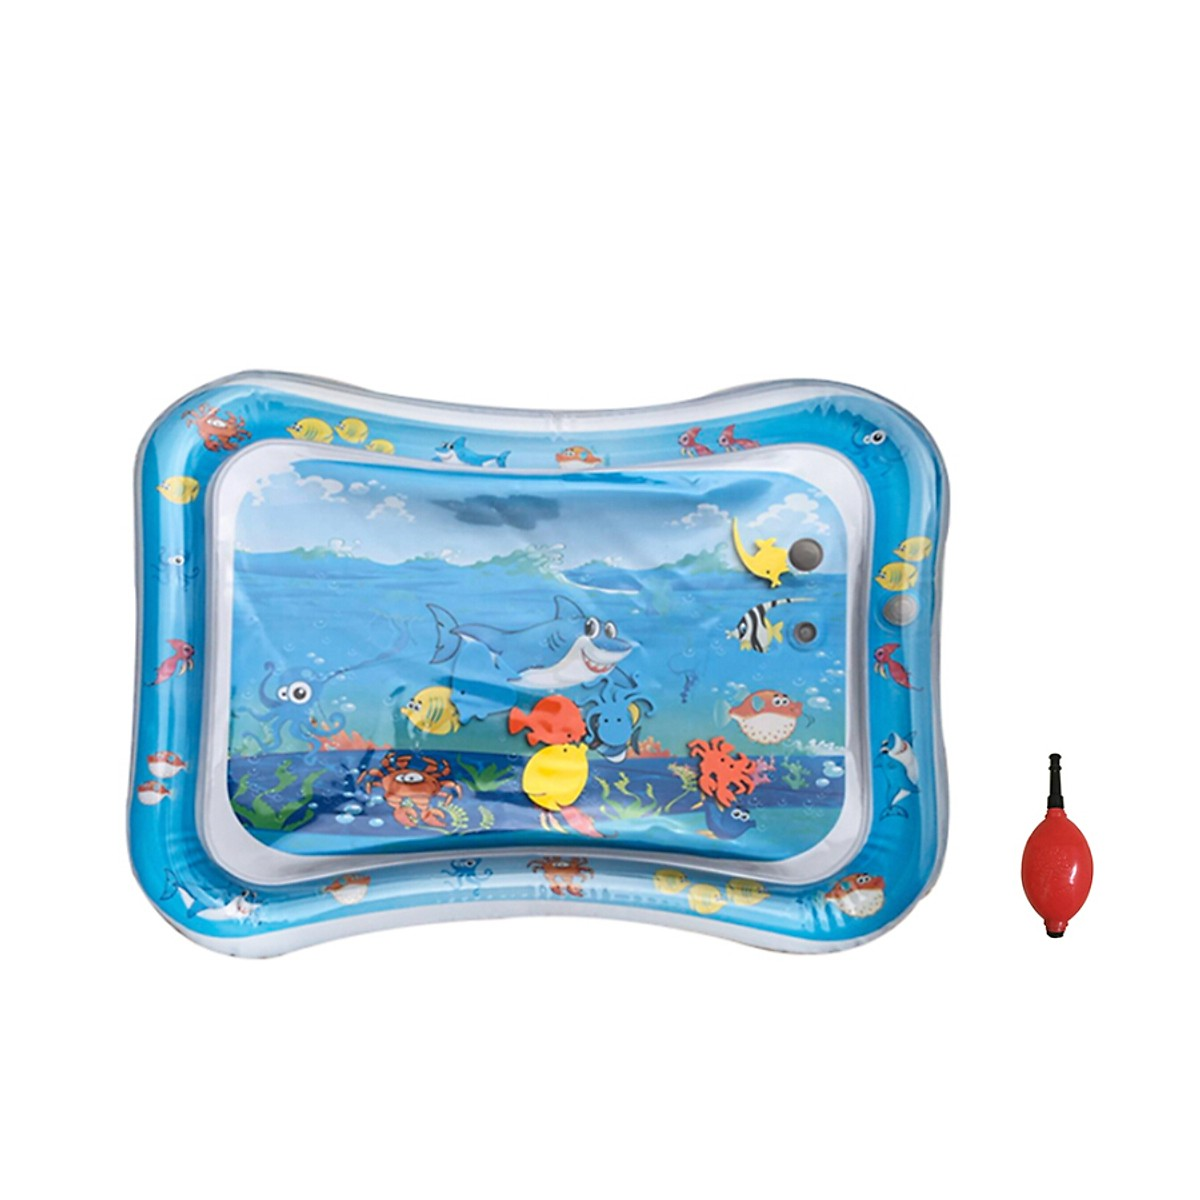 Baby Inflatable Water Play Mat Tummy Time Baby Fun Mat Child Development Play Center with Manual Inflator Pump for 0~3 Years Old I